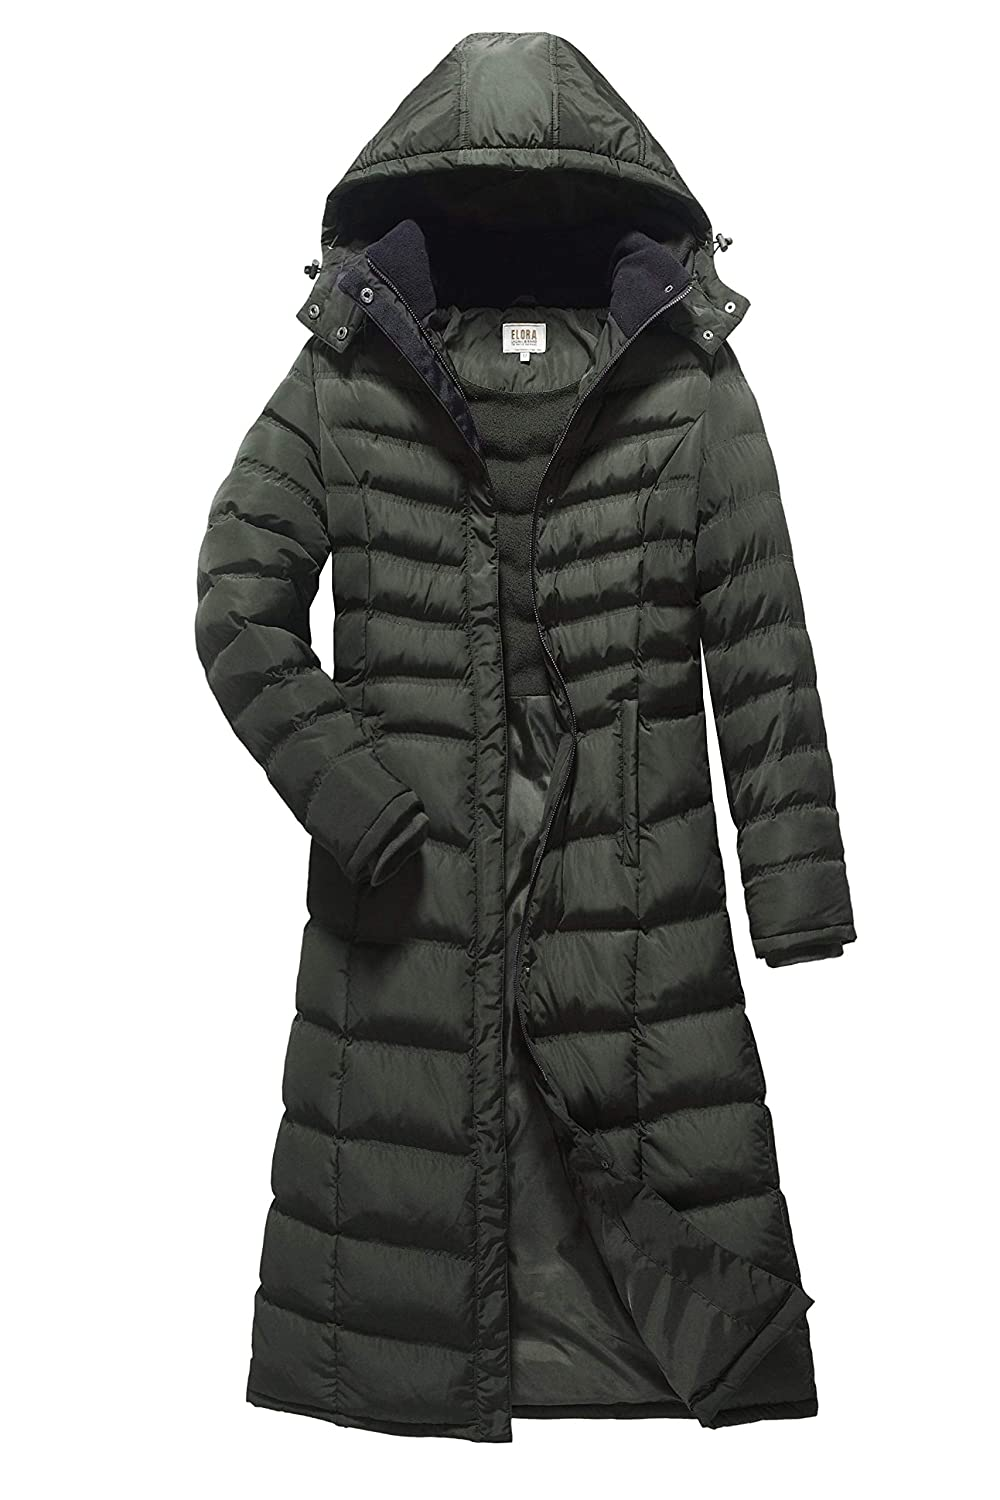 ELORA Women's Full Length Winter Fleece Lined Plus Size Maxi Puffer Coat